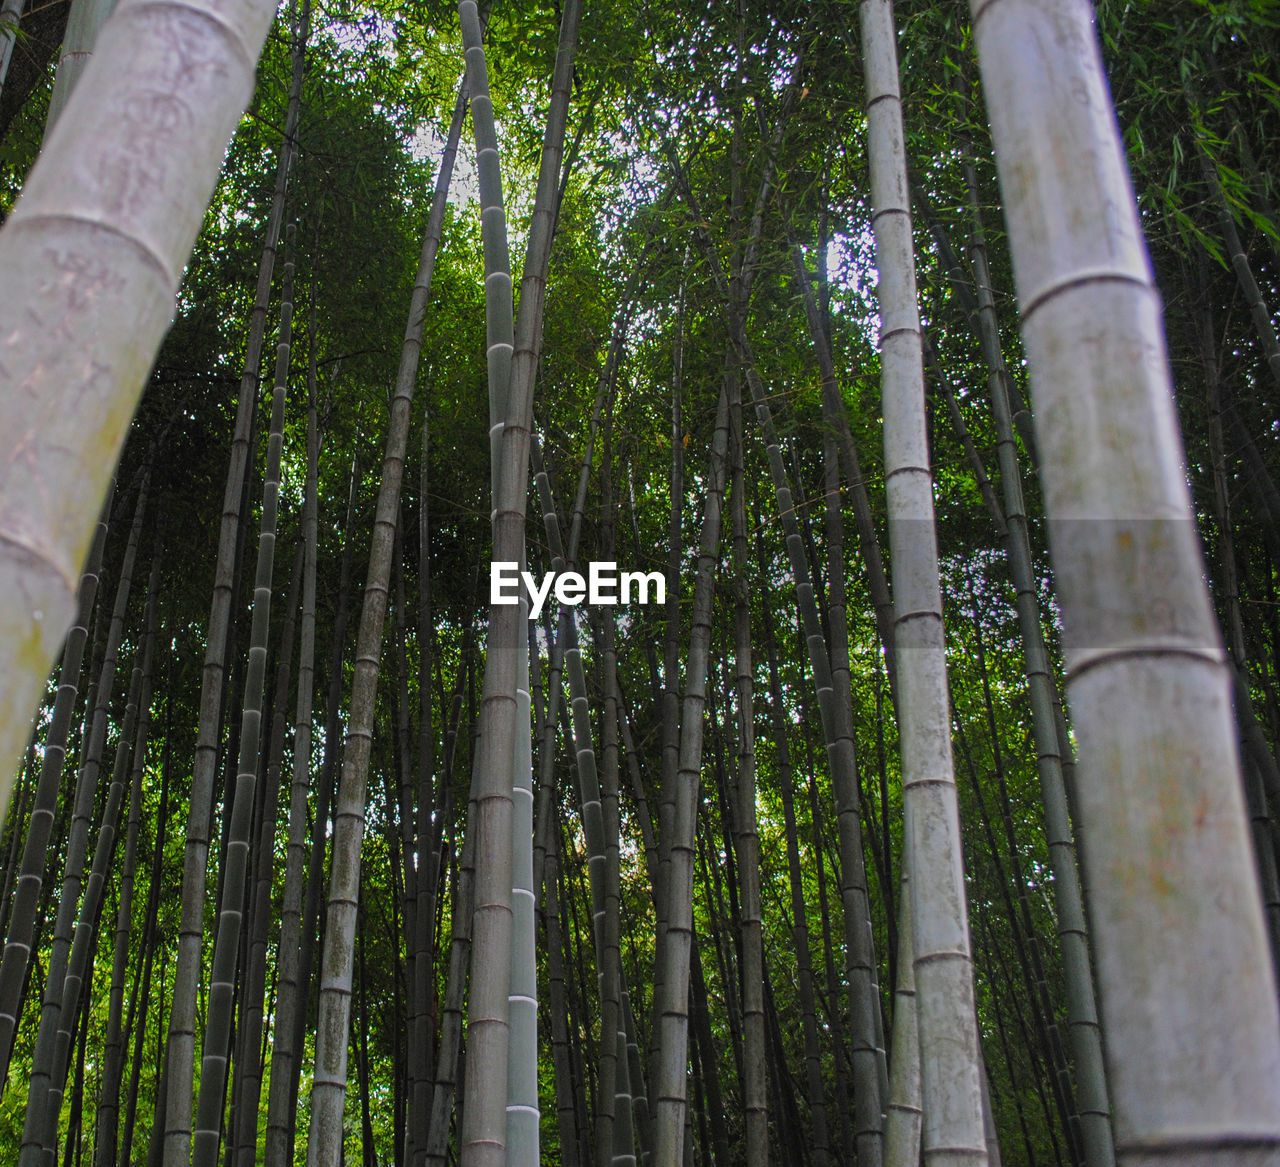 LOW ANGLE VIEW OF BAMBOO PLANTS IN FOREST